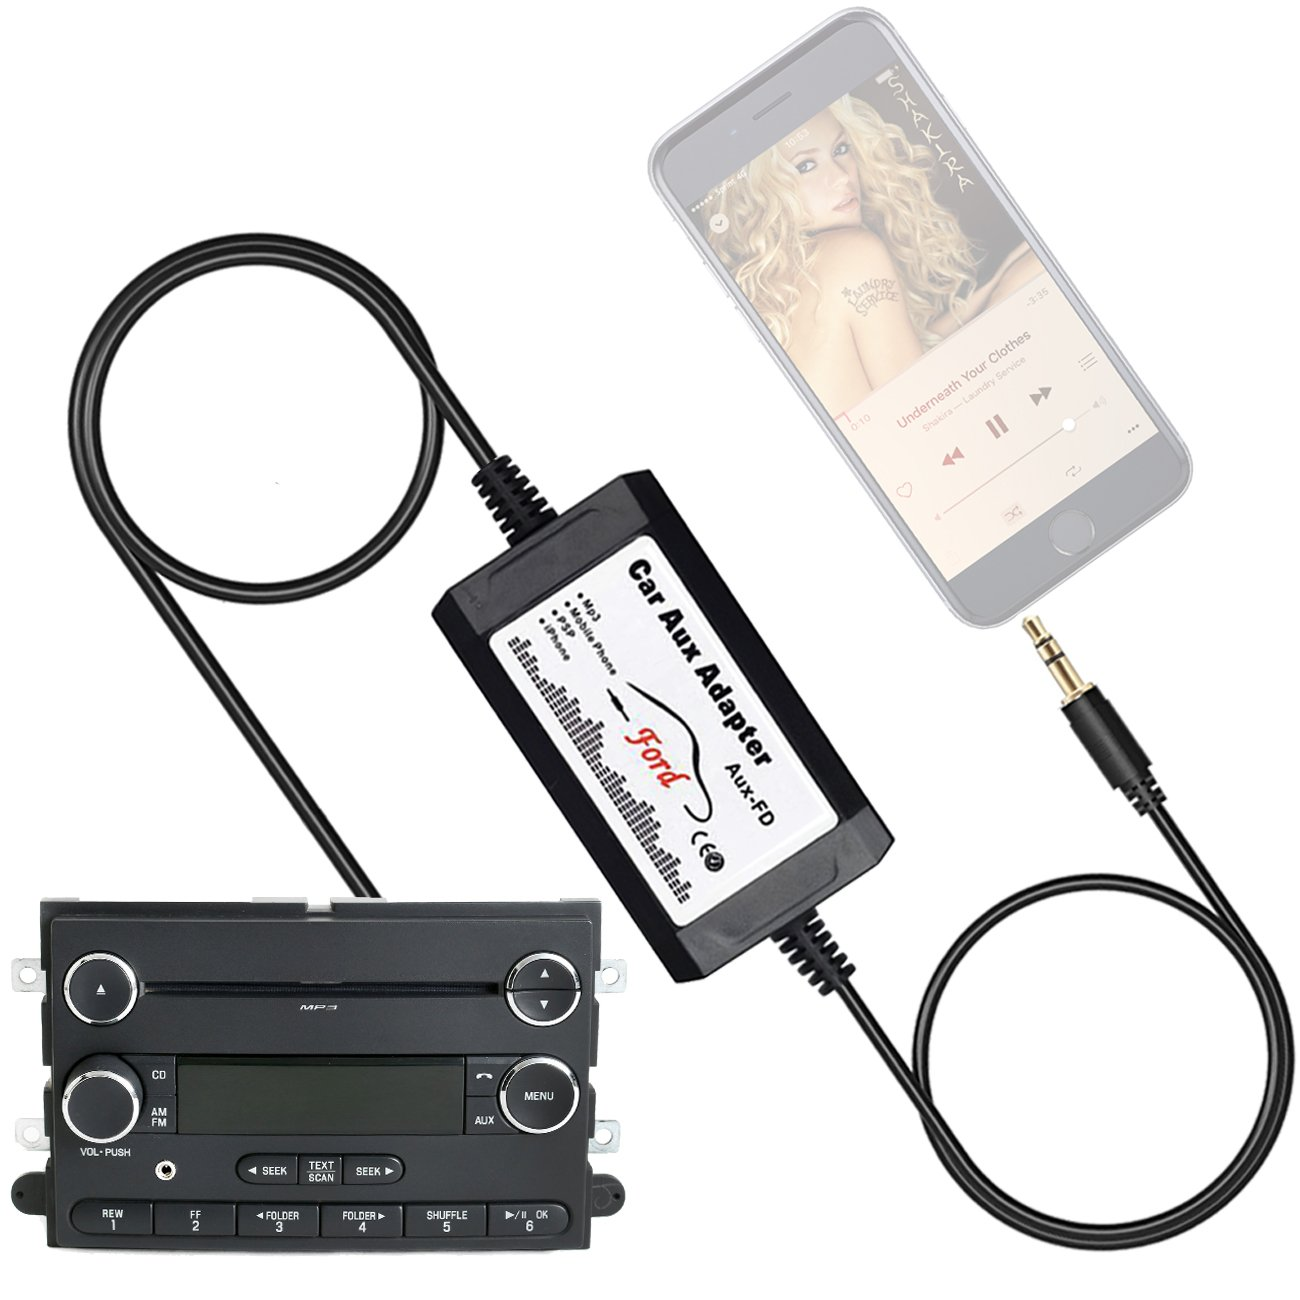 APPS2Car Car Stereo AUX Adapter Audio Cable for Ford F150 F250 F350 F550 Edge Expedition Explorer Focus Freestyle Mustang Sport Trac, Lincoln, Mercury - CD Auxiliary Input Jack Adapters by APPS2Car